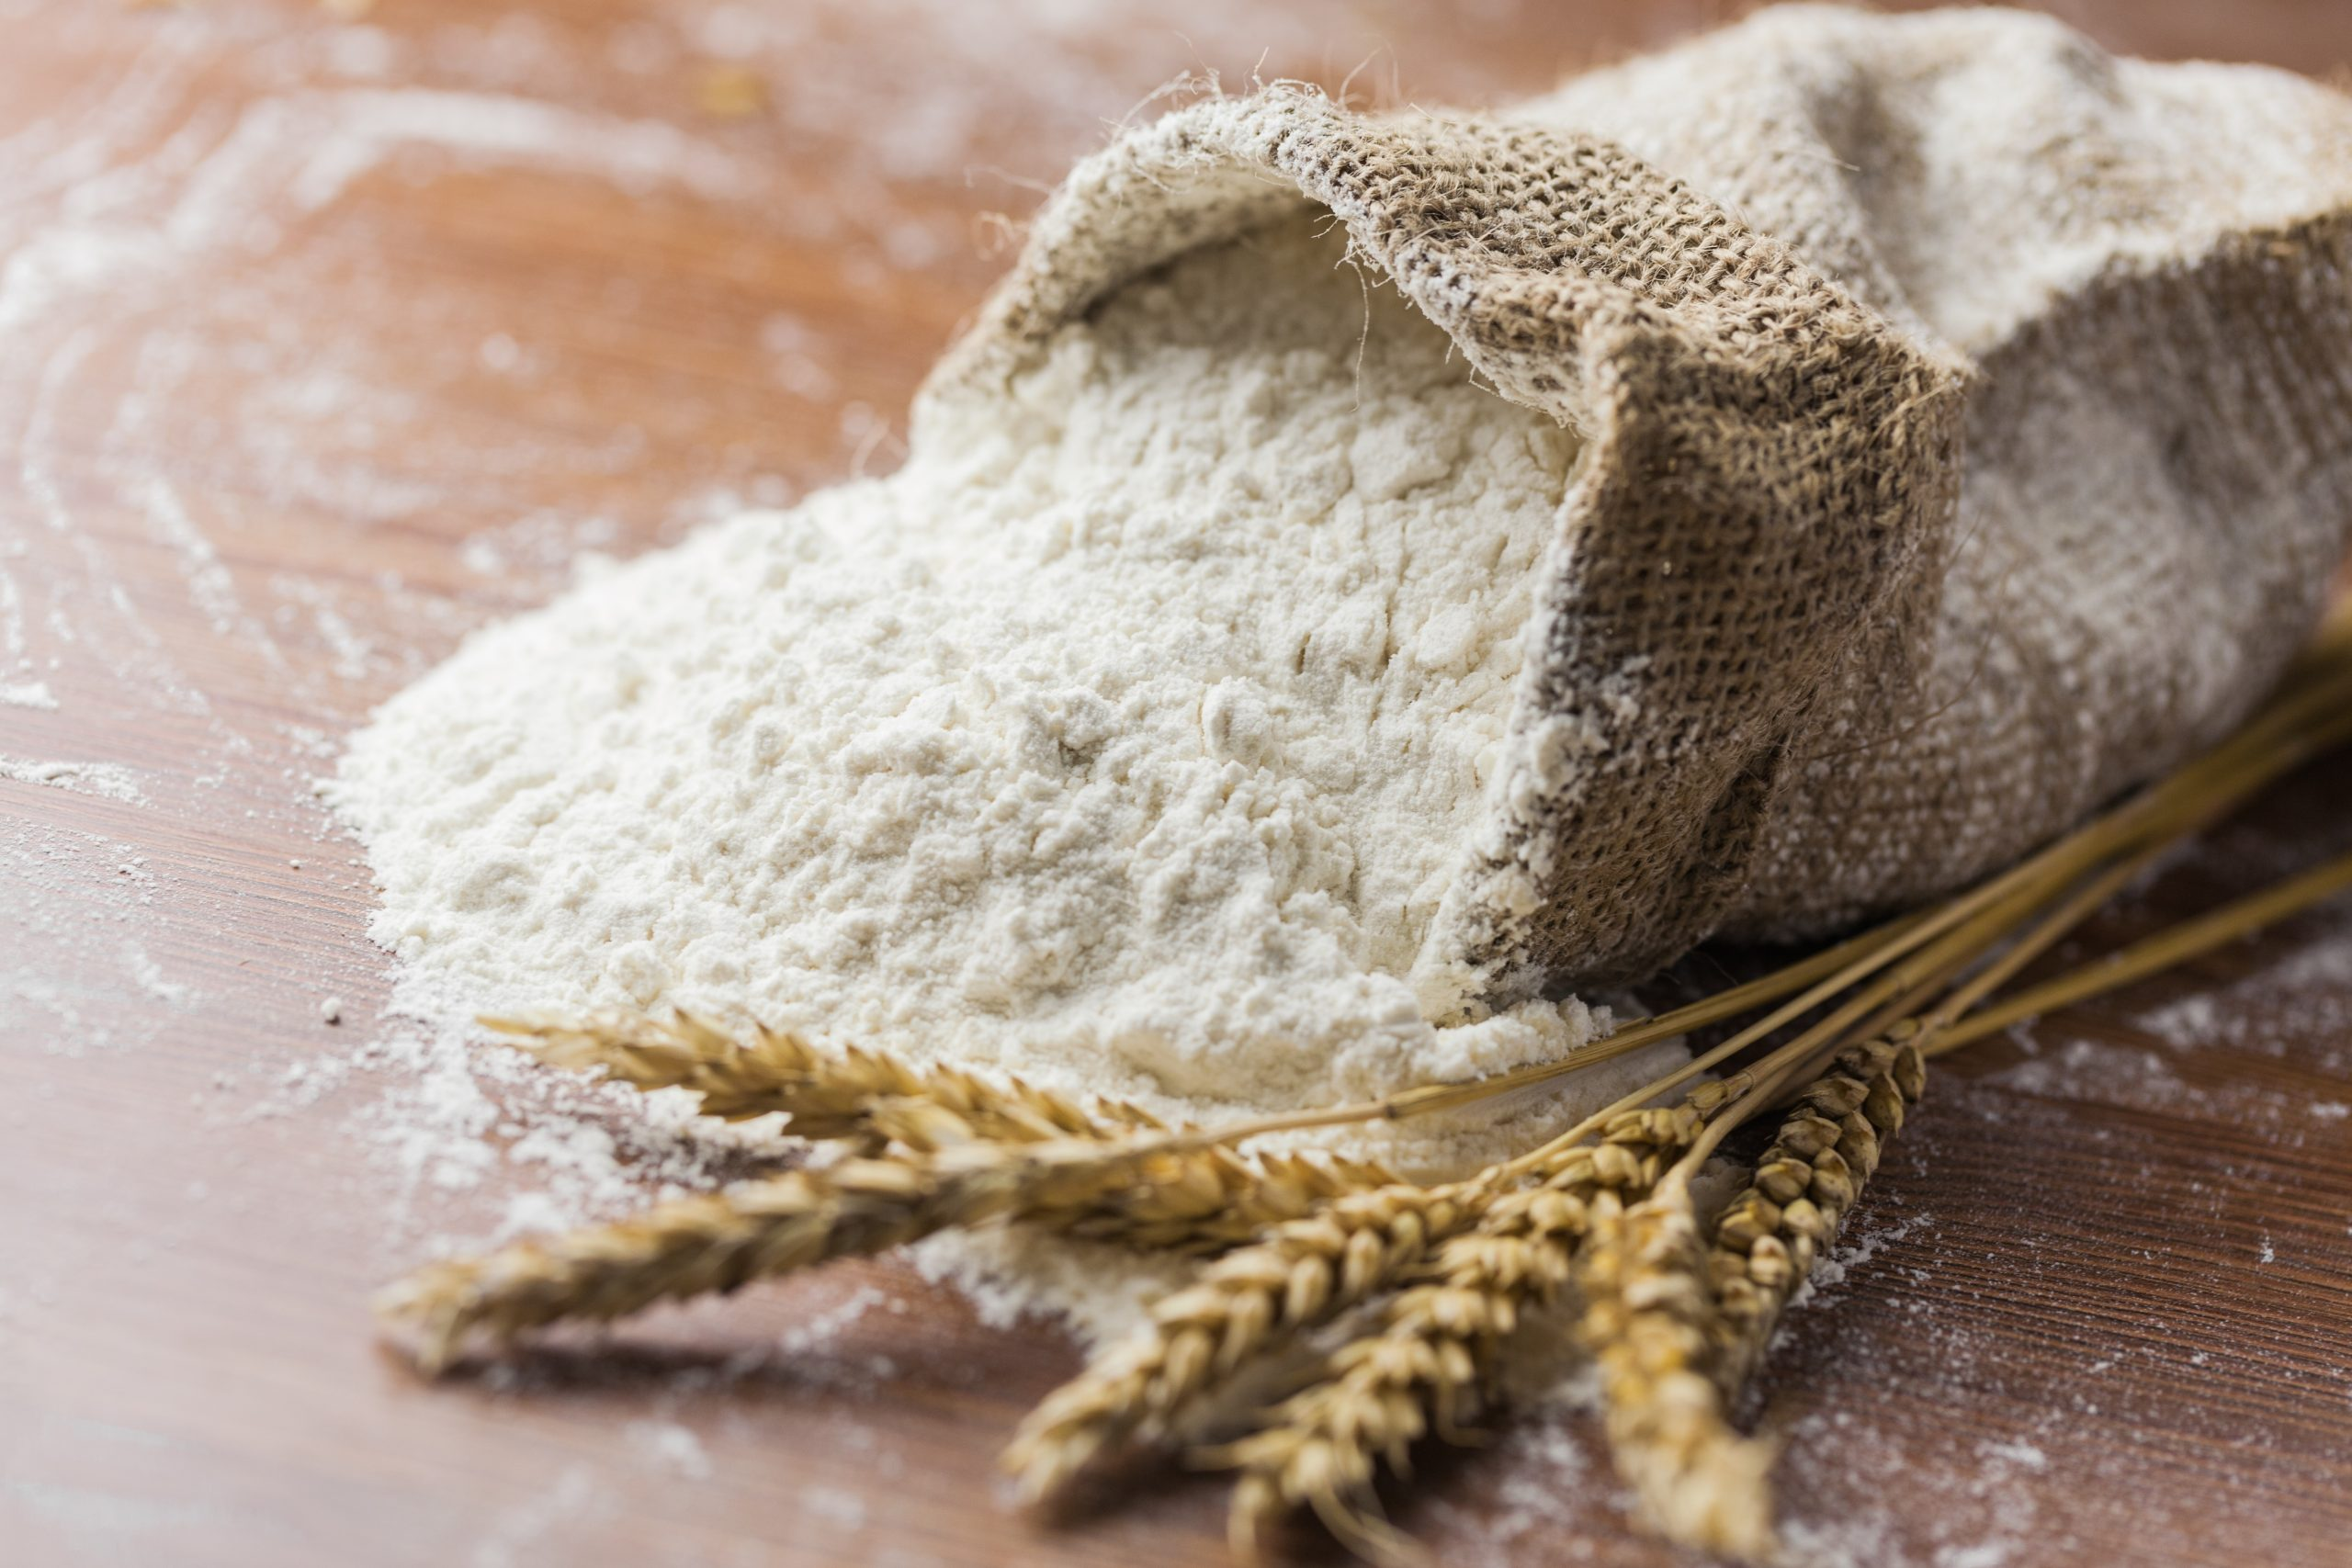 FSA proposes to relax rules on unfortified flour